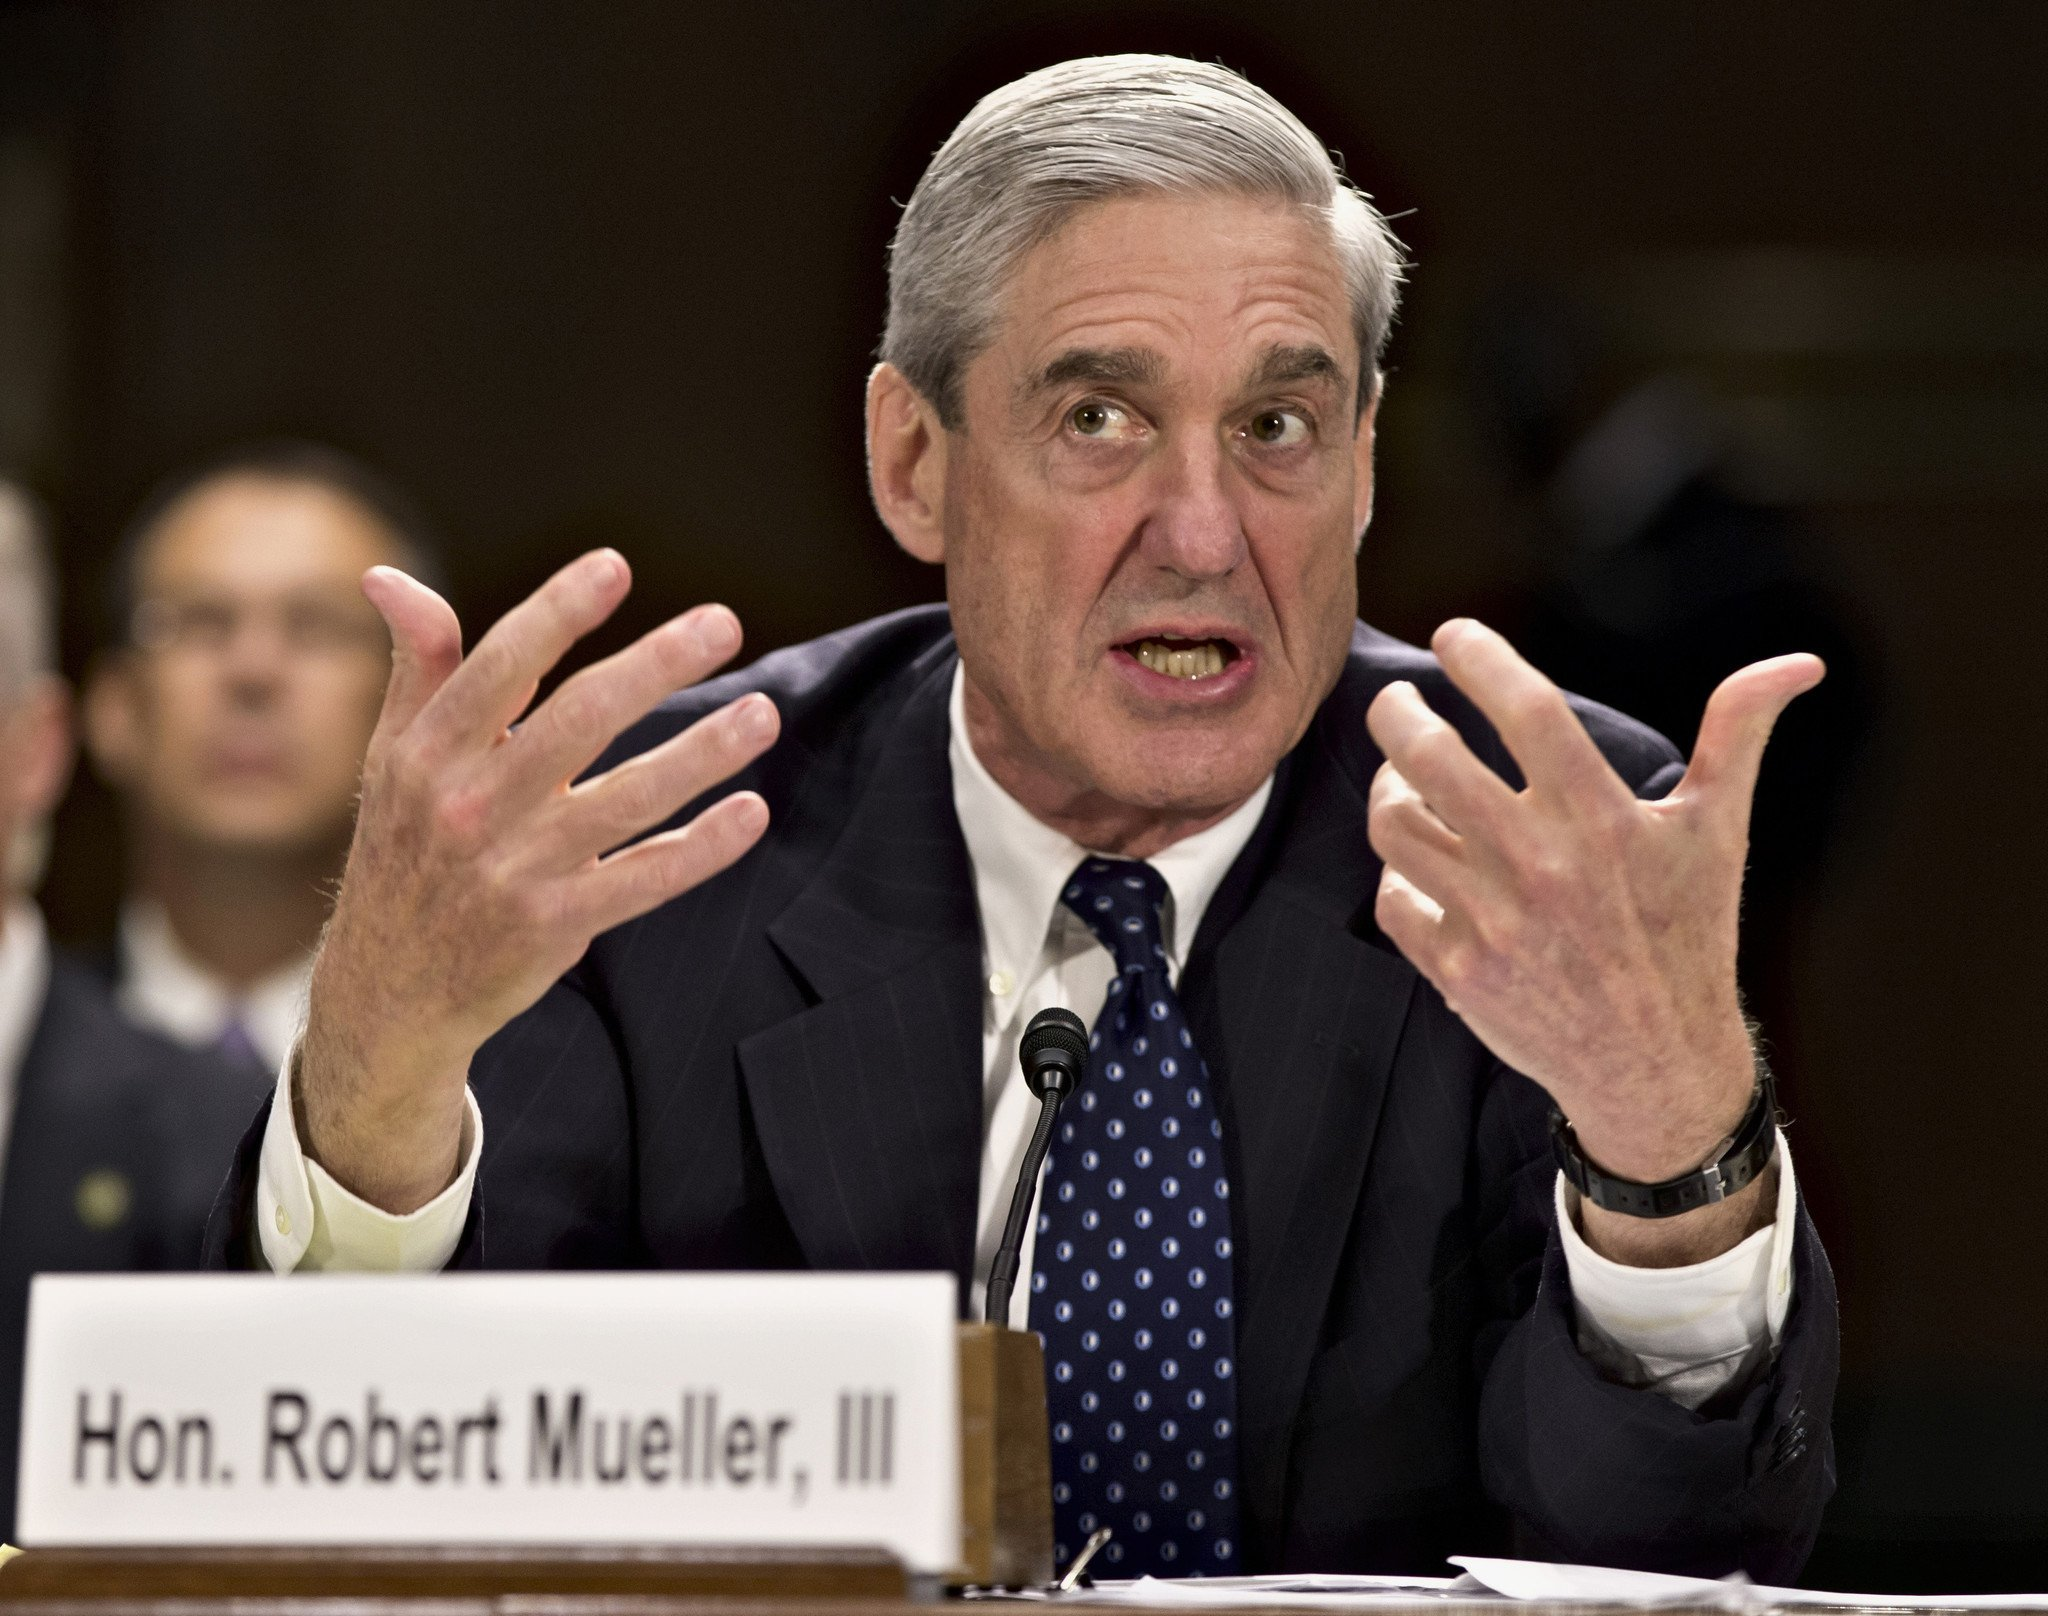 An indictment of 13 Russians in connection with 2016 election meddling and comments by Deputy Attorney General Rod Rosenstein should put to rest once and for all the allegation that members of President Donald Trump's 2016 campaign colluded with Russian government and business interests to defeat Hillary Clinton, a former federal prosecutor said Friday. Joseph …